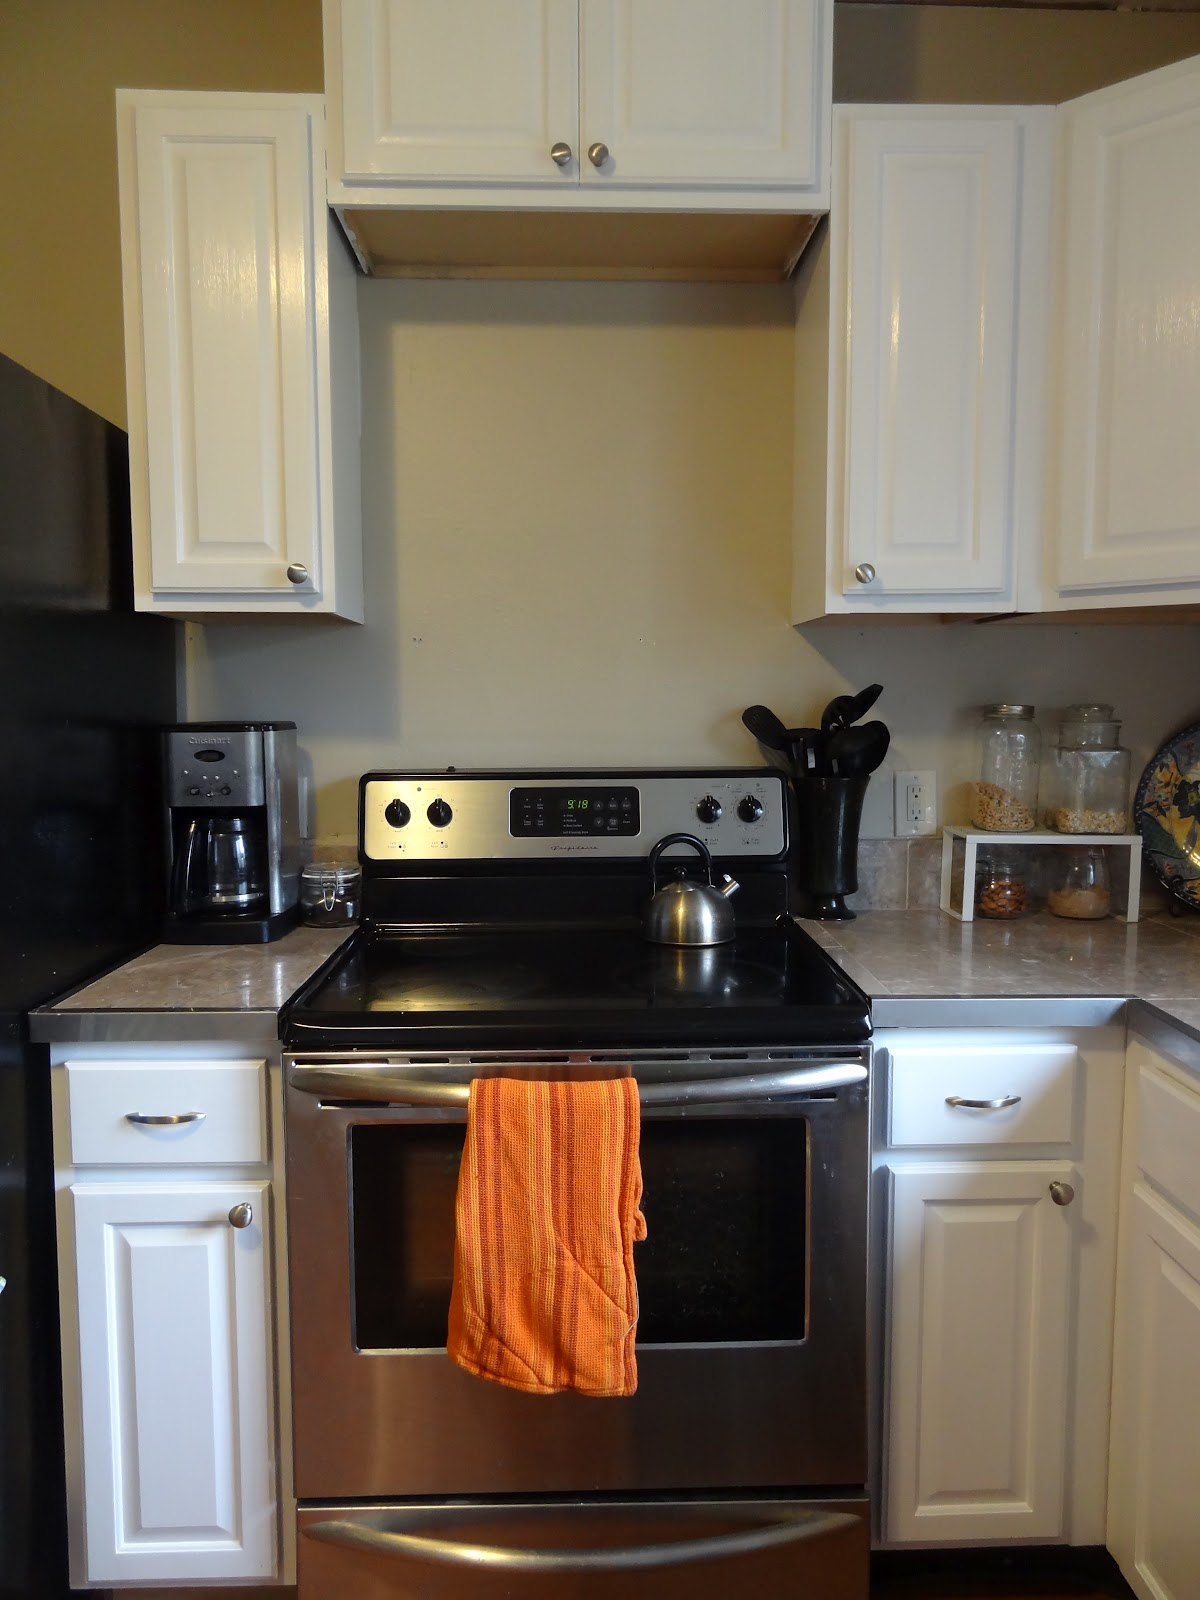 Diy how to paint kitchen cabinets white update revamp for Update white kitchen cabinets